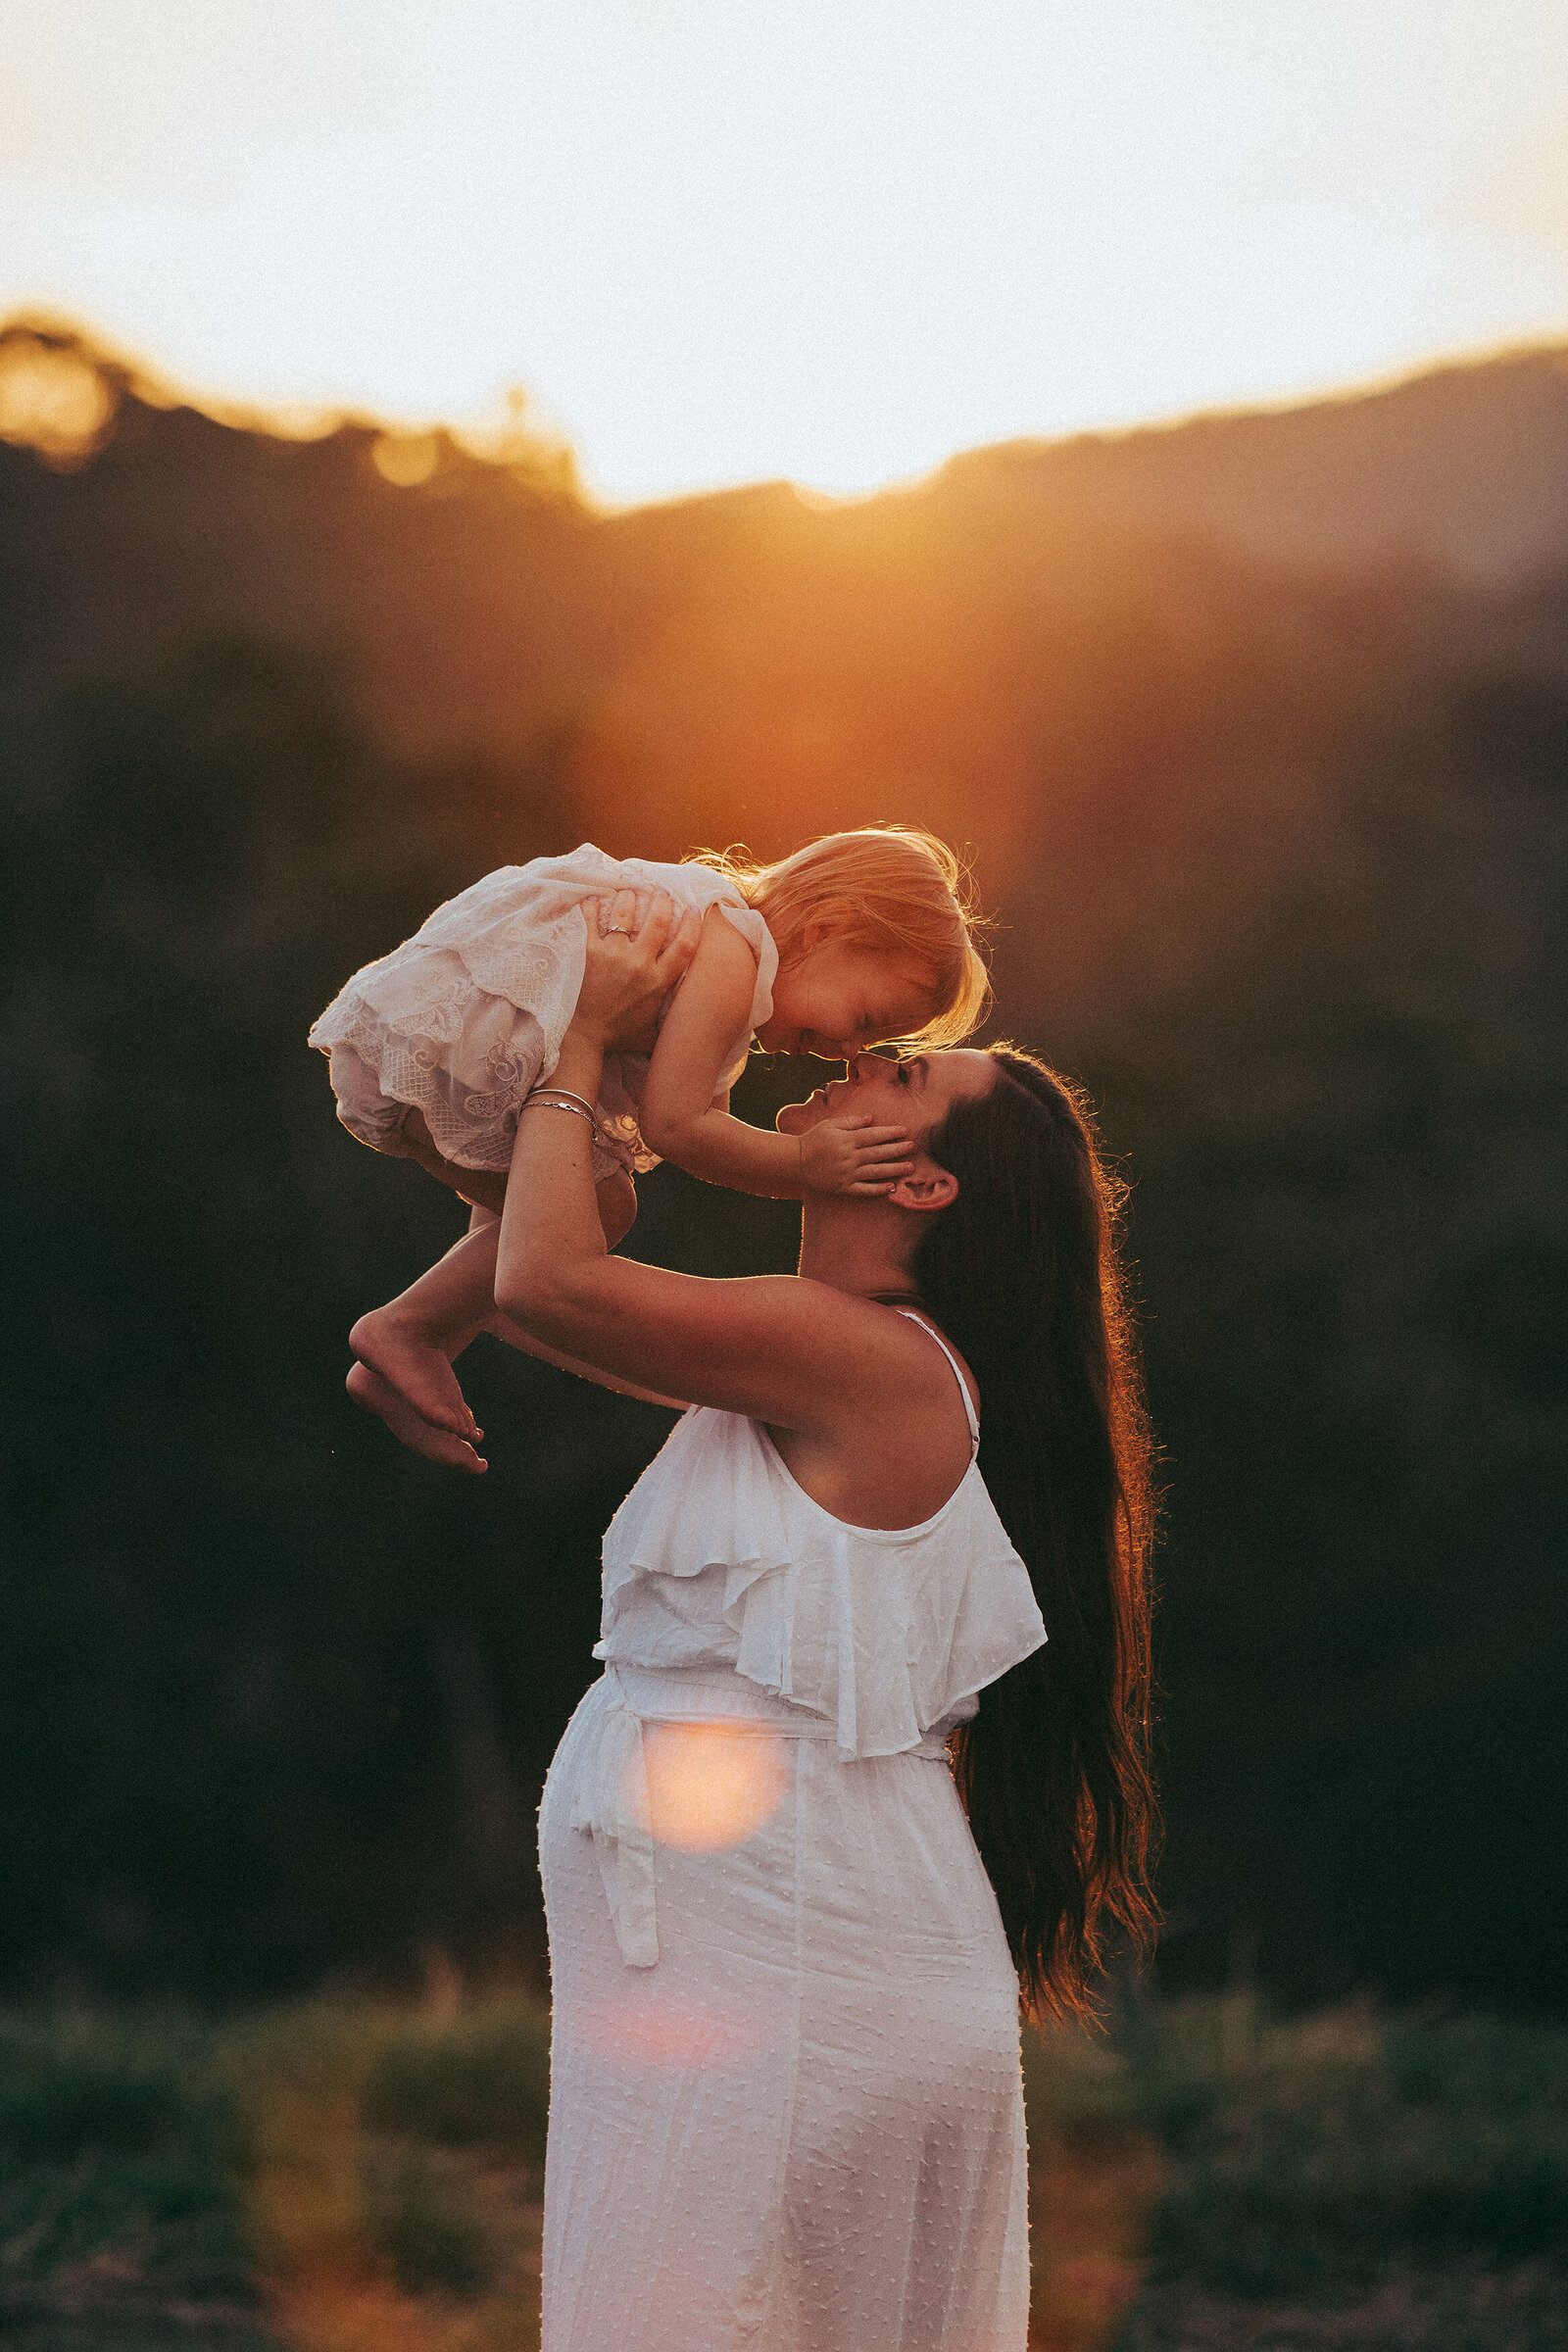 Professional maternity portrait outdoors, mother holding daughter in air